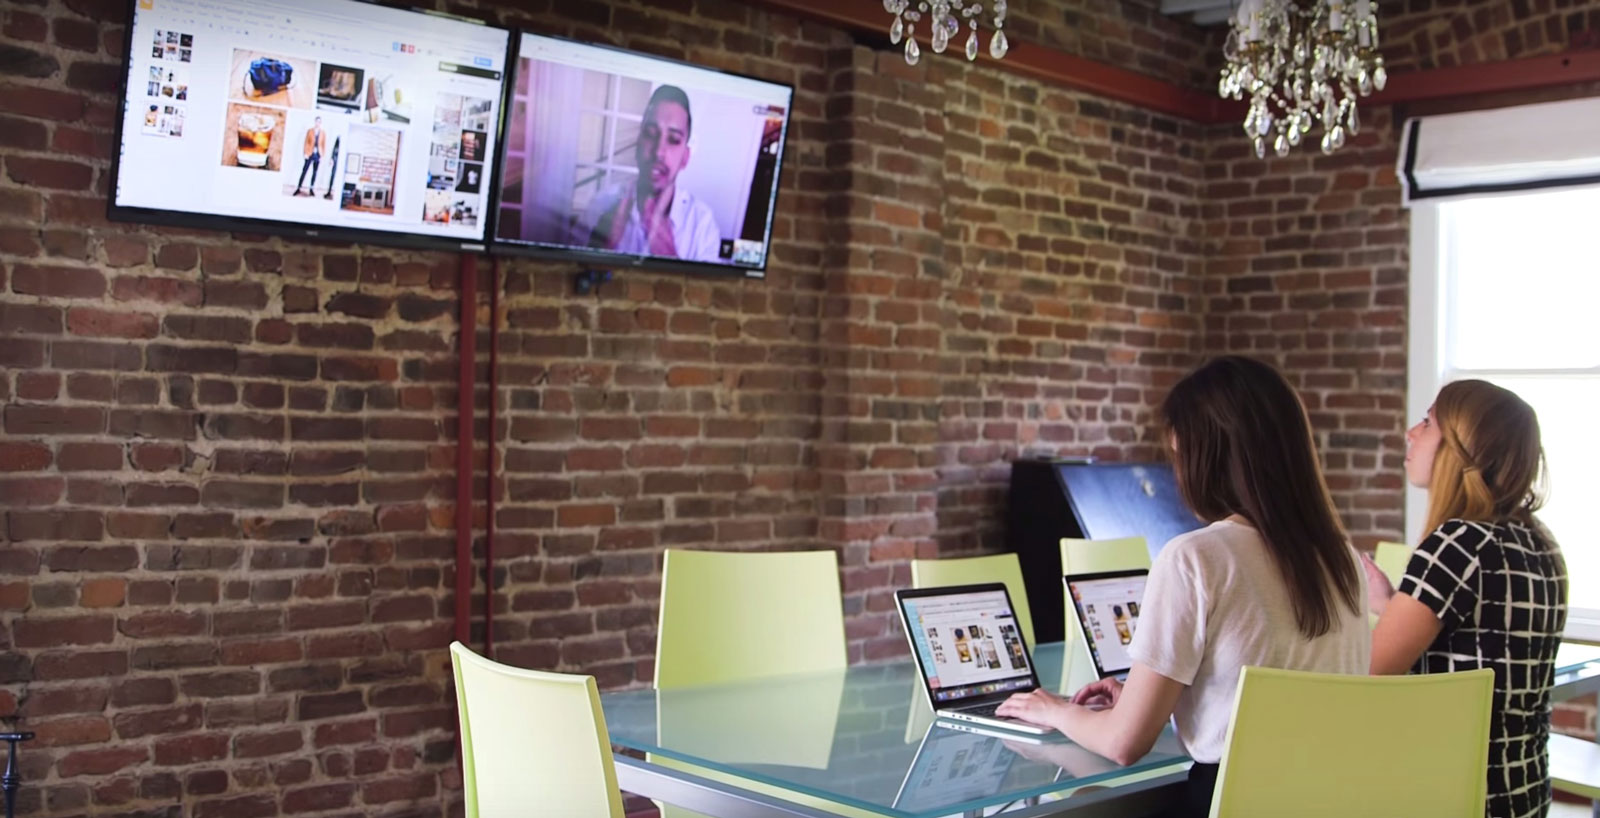 Grow Marketing employees walks Gabrey Means, Co-founder and Creative Director through a venue via Google Hangouts